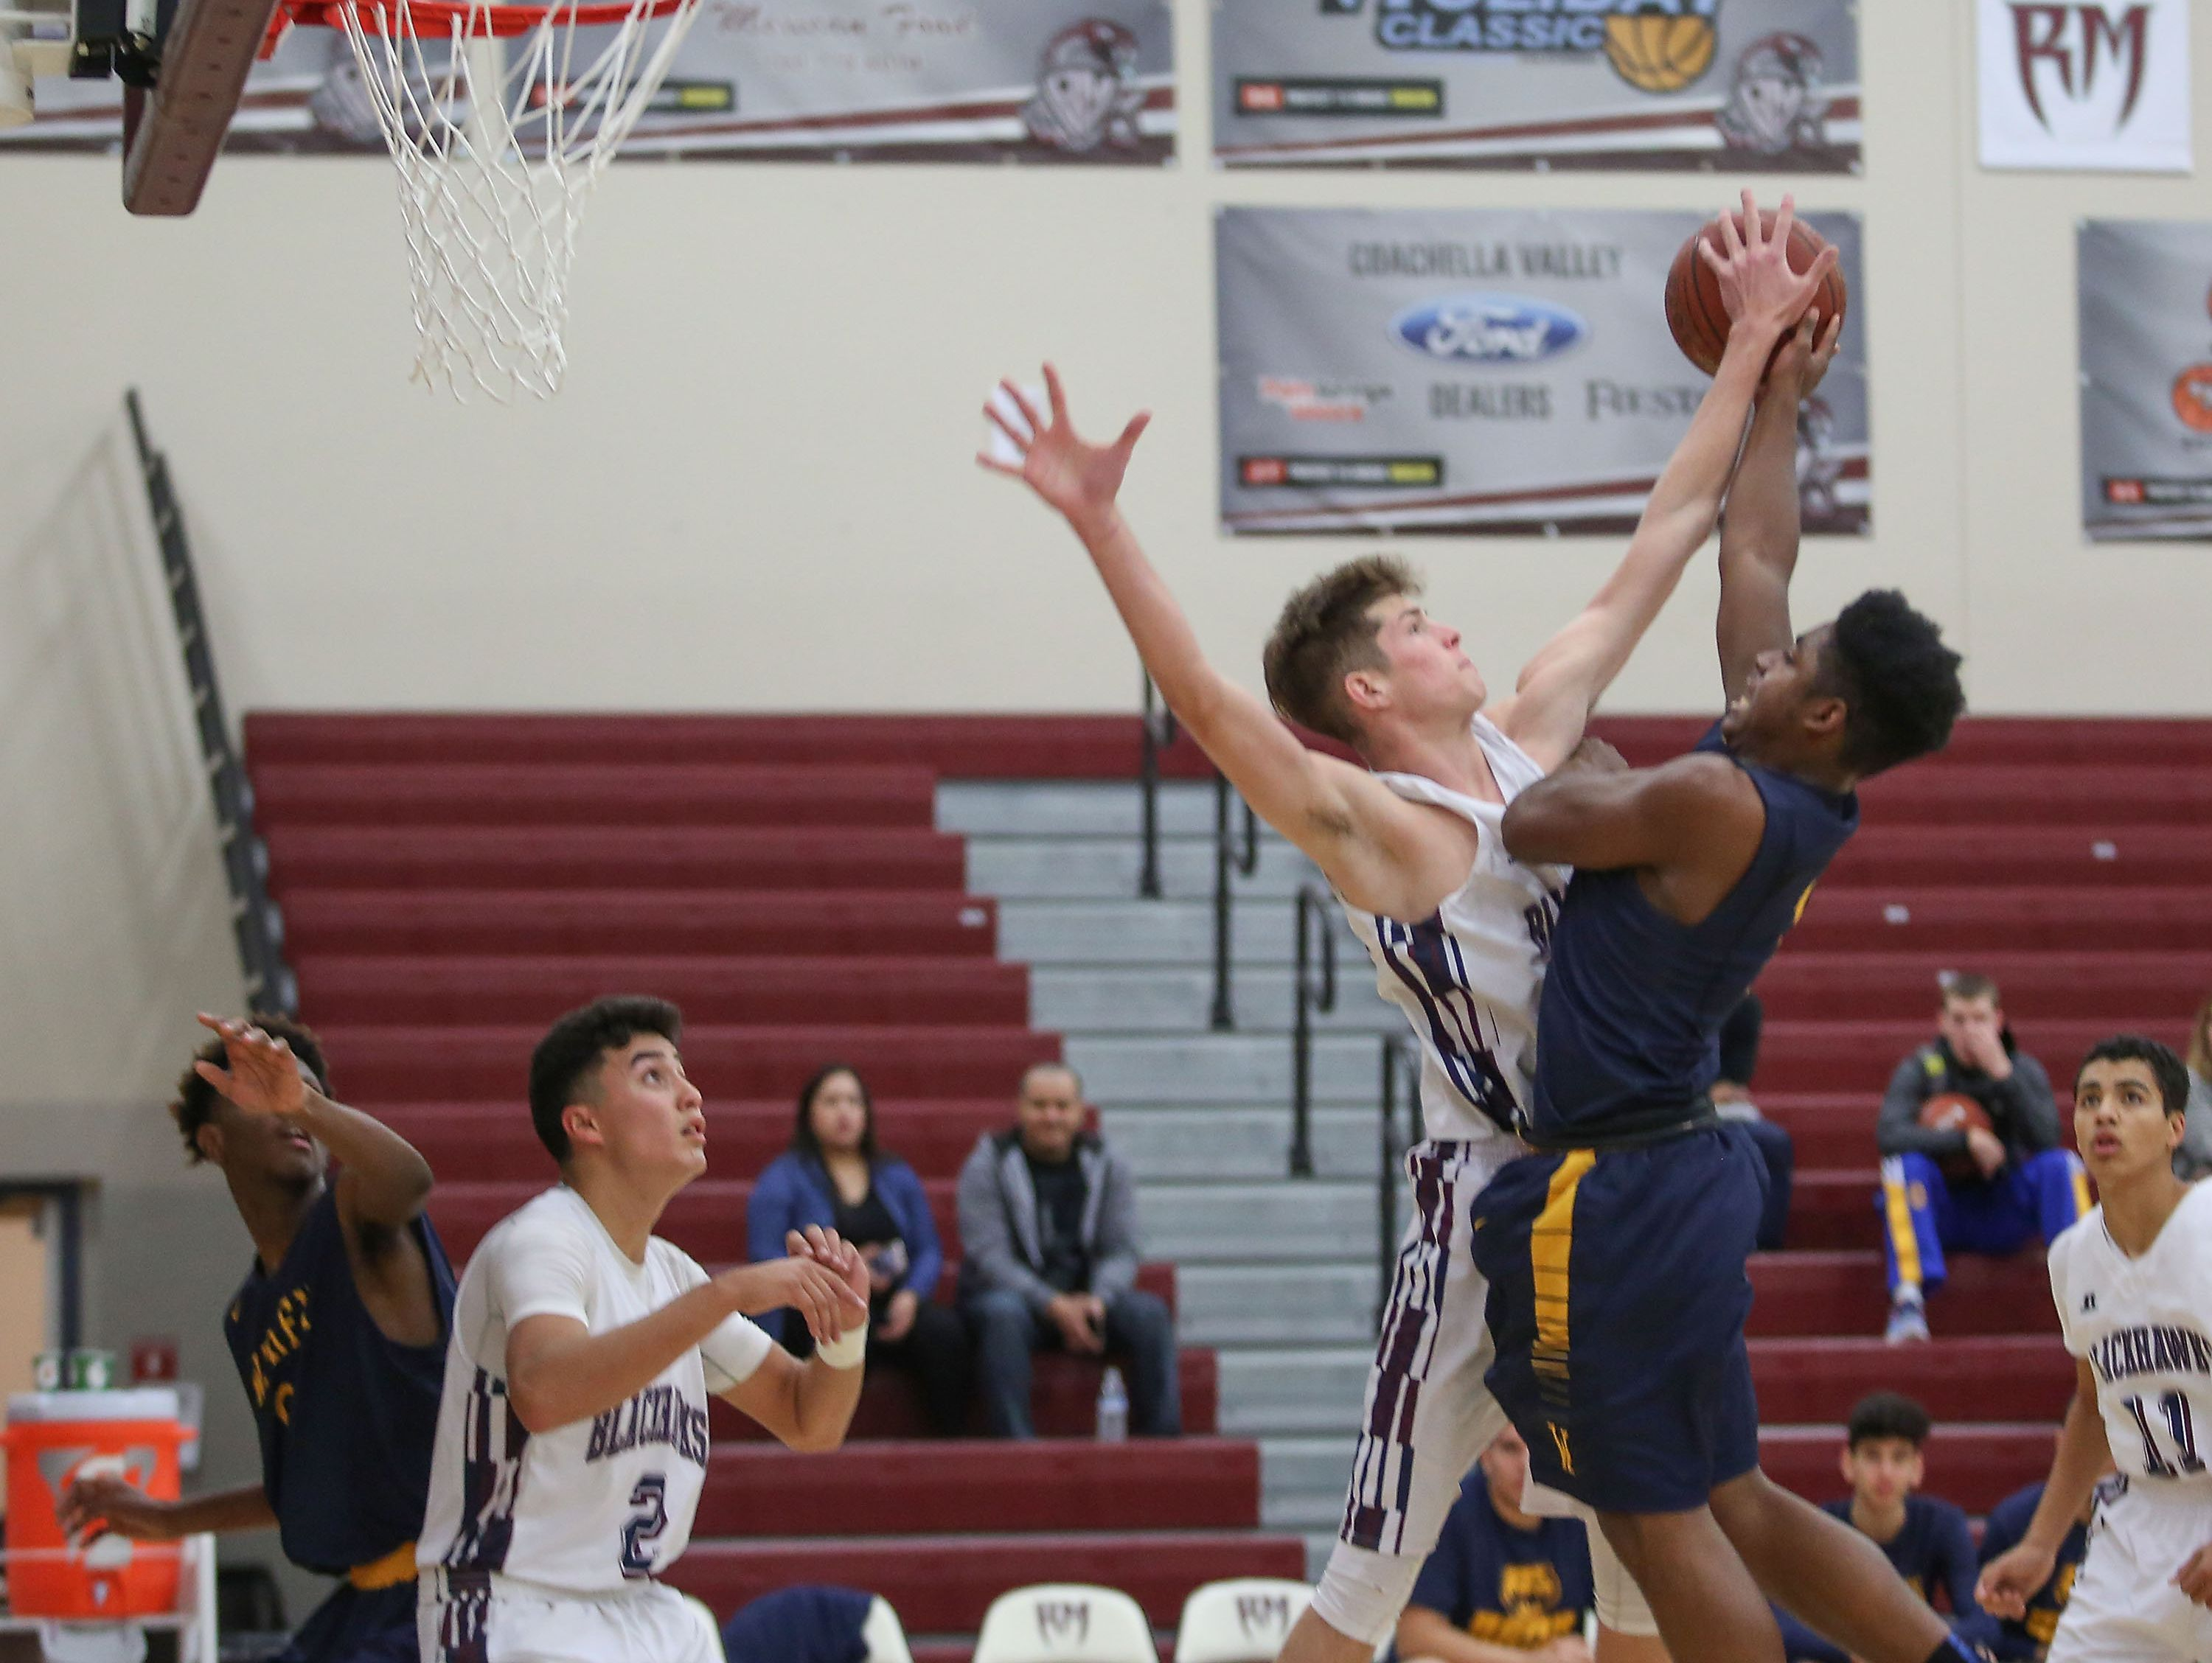 Jacob Conradi of La Quinta blocks a shot during their win against Warren at the MaxPreps Holiday Classic in Rancho MIrage, December 29, 2016.